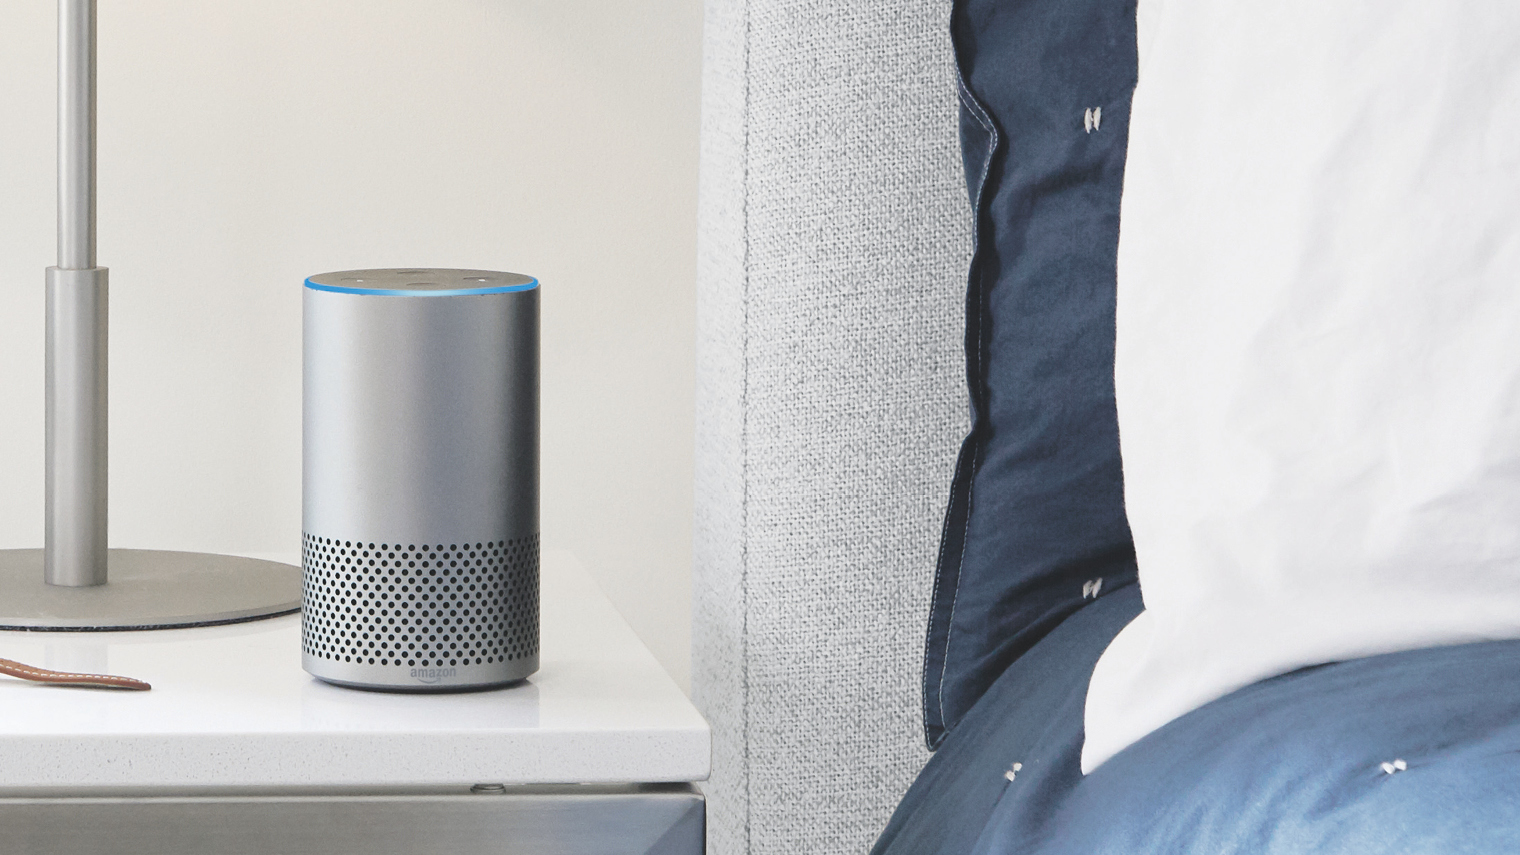 Amazon Echo on a bed side table